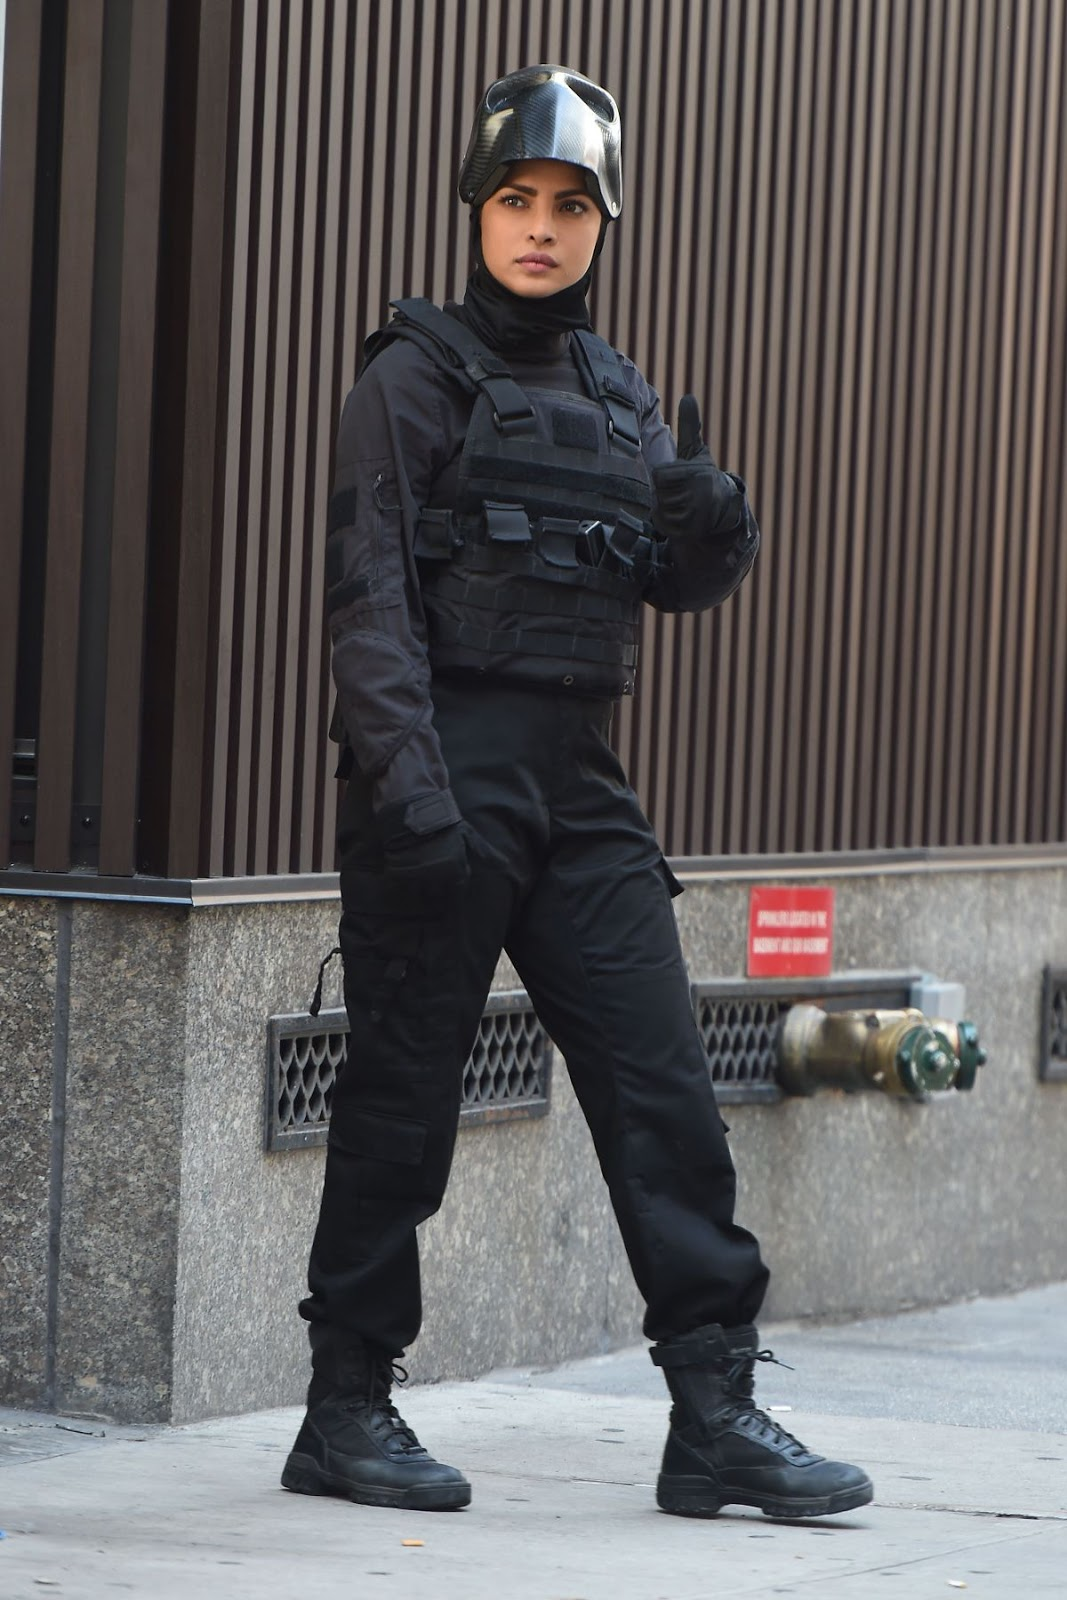 Priyanka Chopra on The Set of Drama Series Quantico in New York